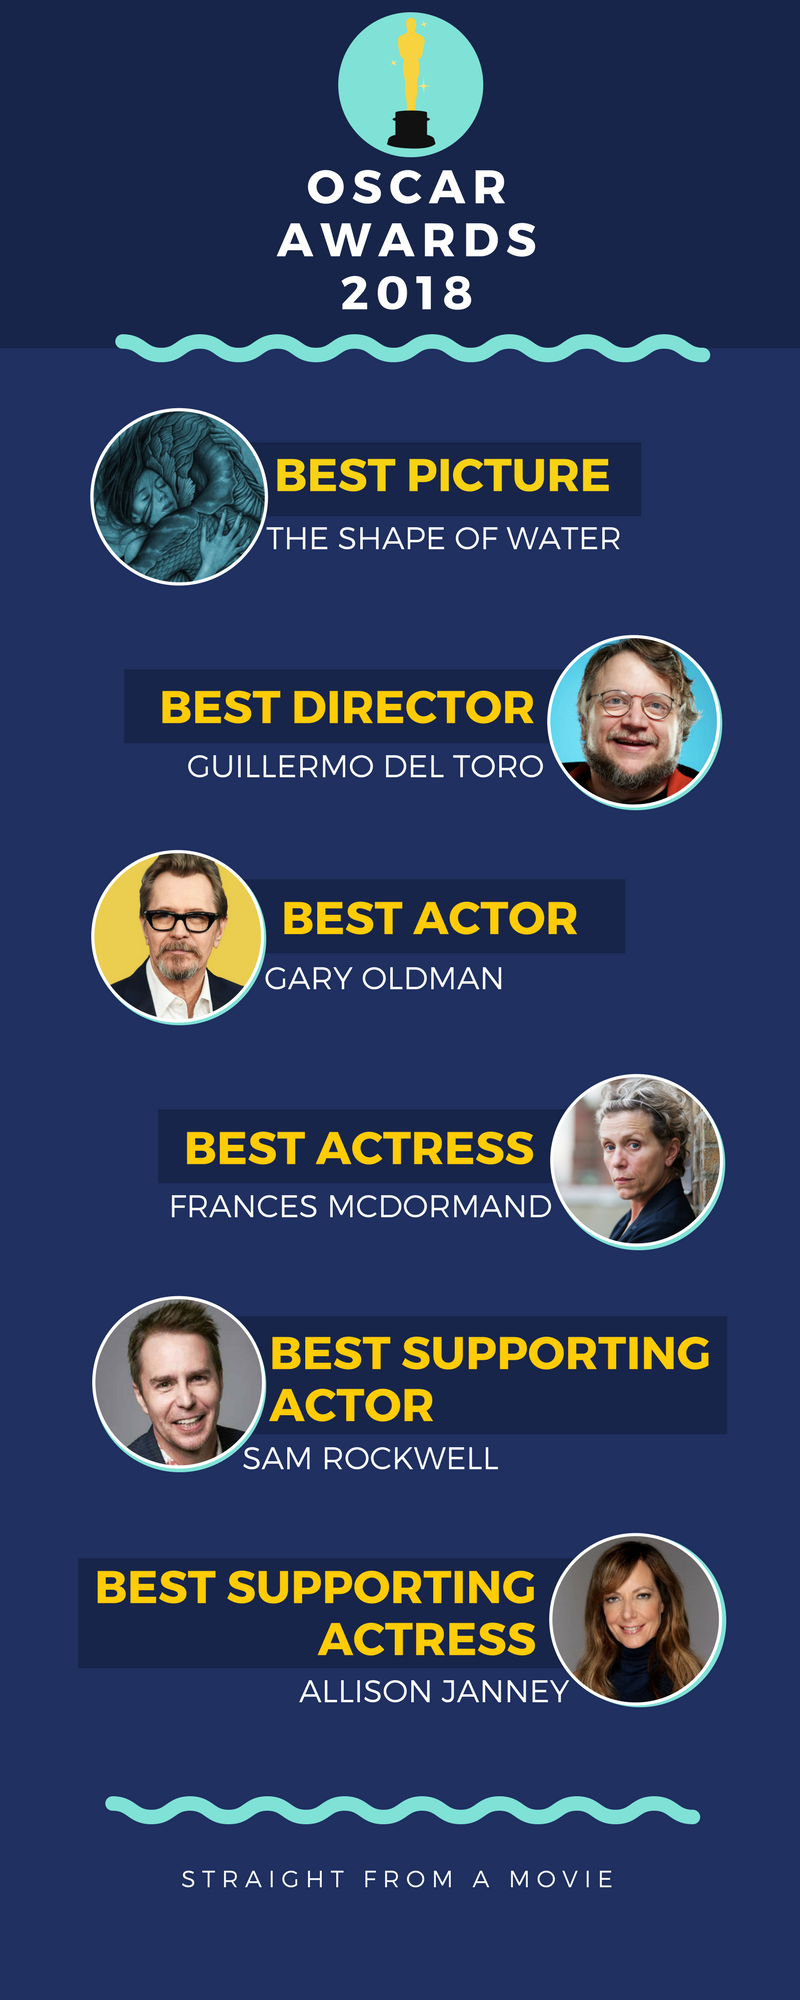 oscars 2018 infographic page 1